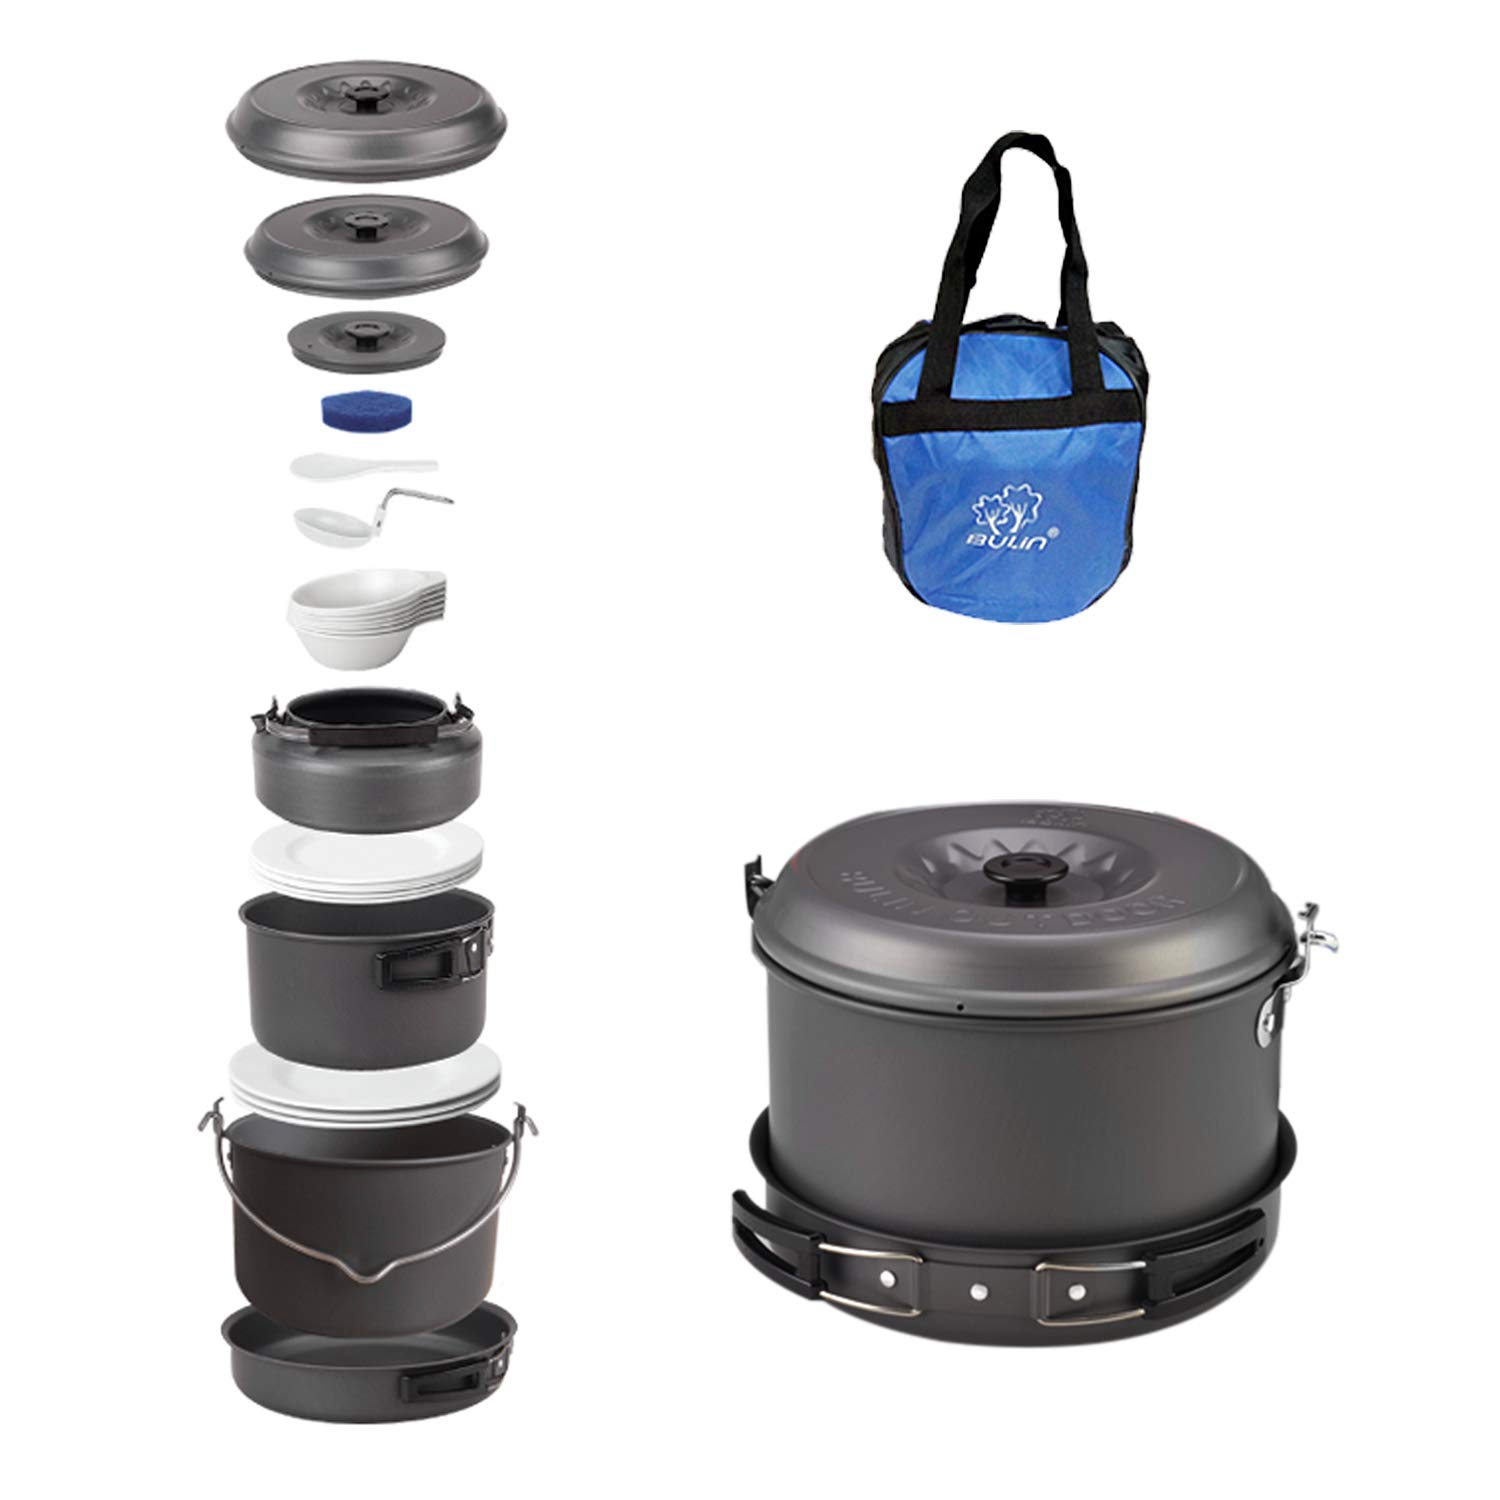 Bulin 27 Pieces Camping Cookware Mess Kit, Nonstick Outdoor Backpacking Cooking Gear Set for Family 6-7 Person, Lightweight Cookware Sets(Kettle, Pots, Frying Pan, BPA-Free Bowls, Plates, Spoon) by Bulin